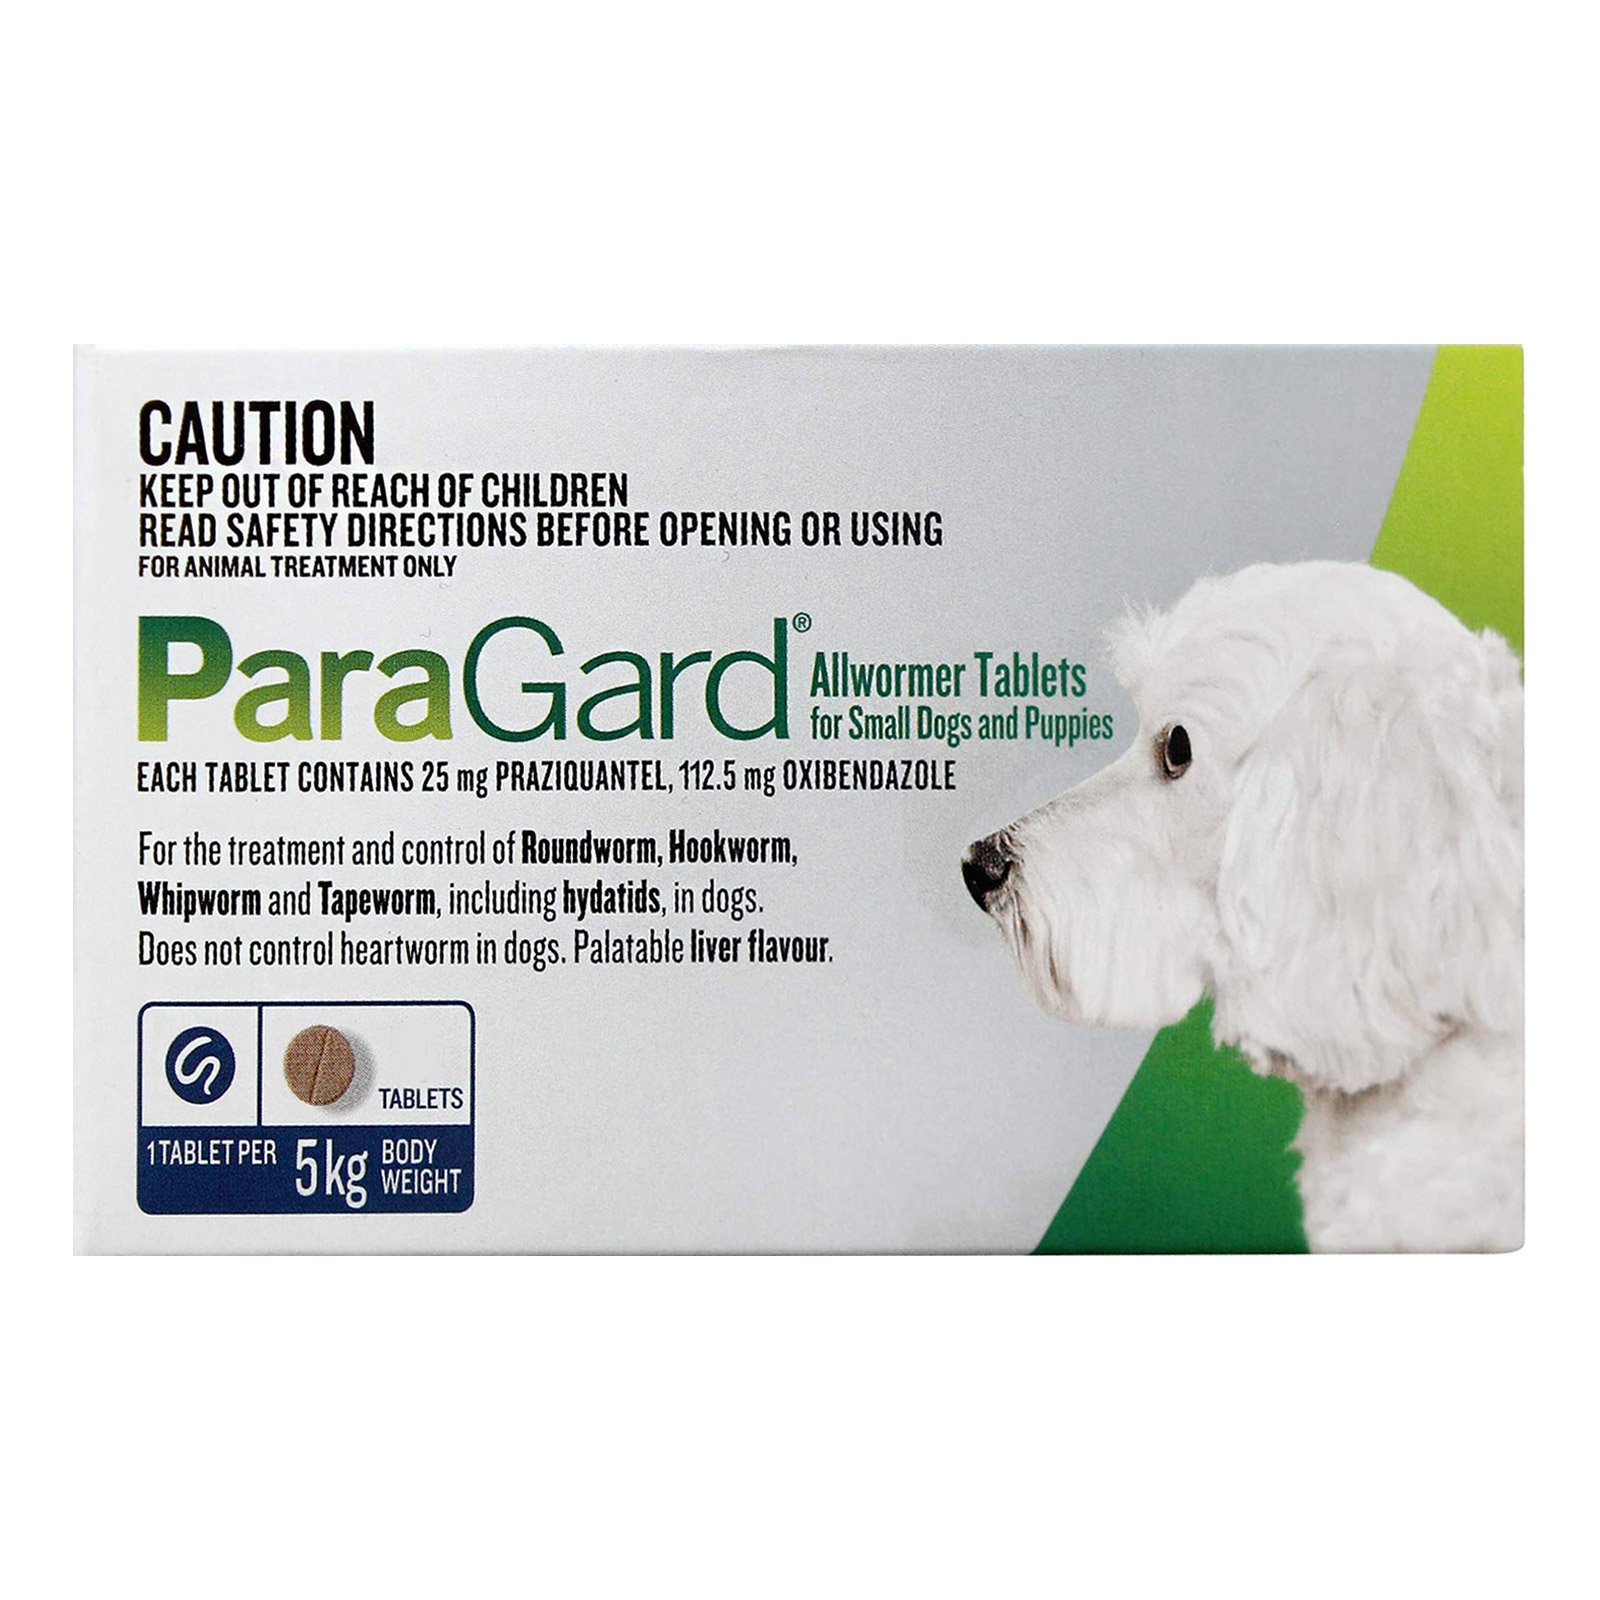 Buy Paragard Allwormer for Dogs